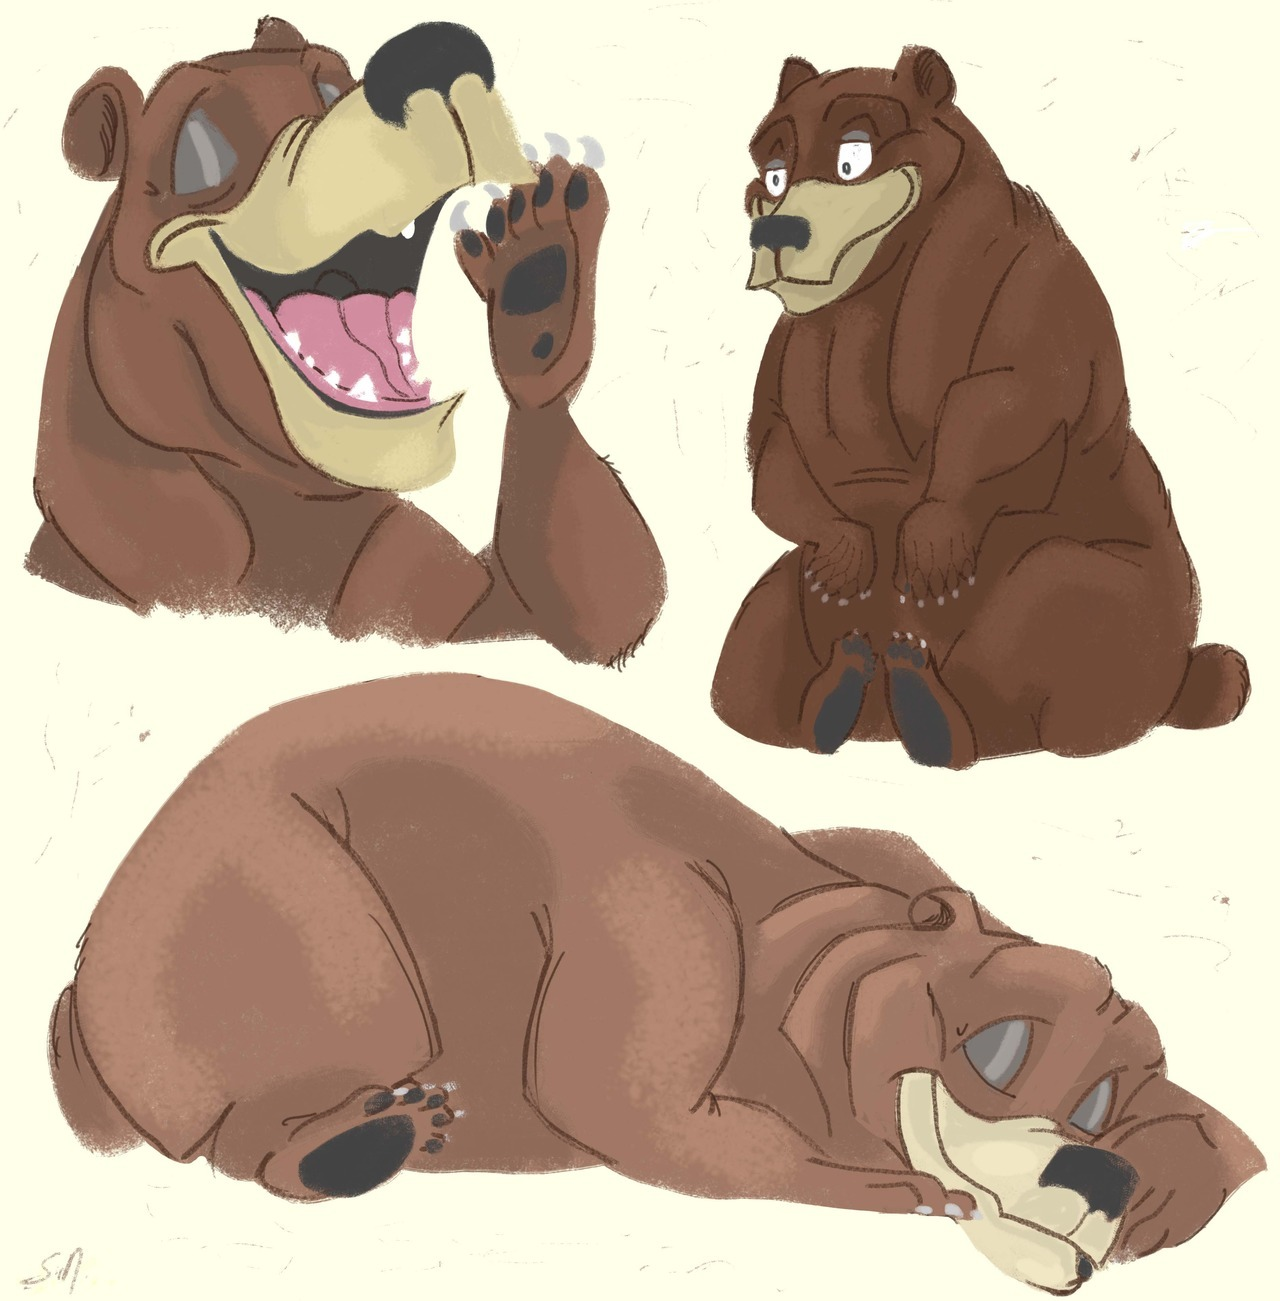 Just some bears.